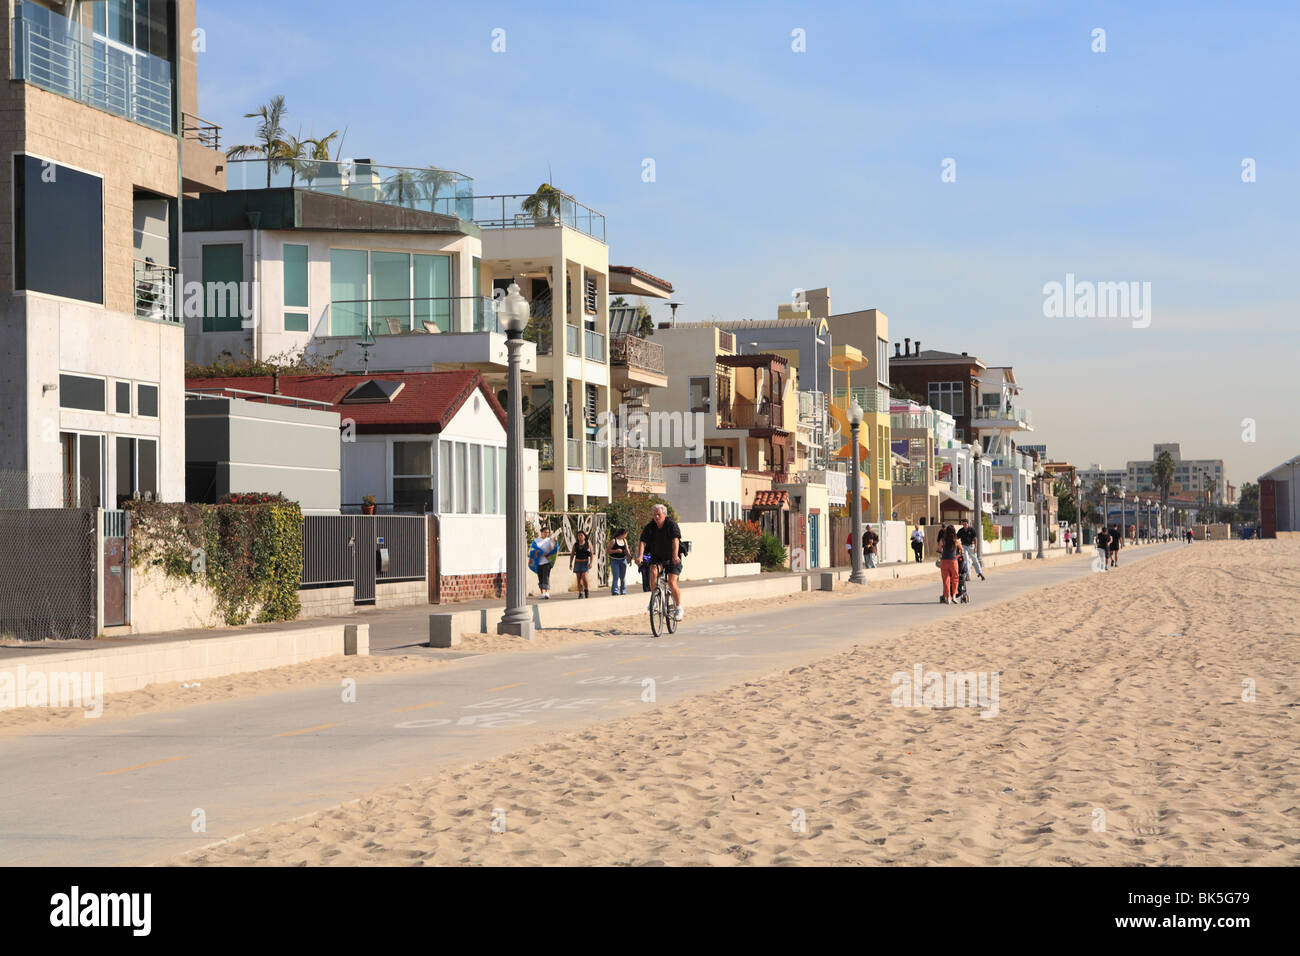 Santa monica beach houses promenade los angeles for California los angeles houses